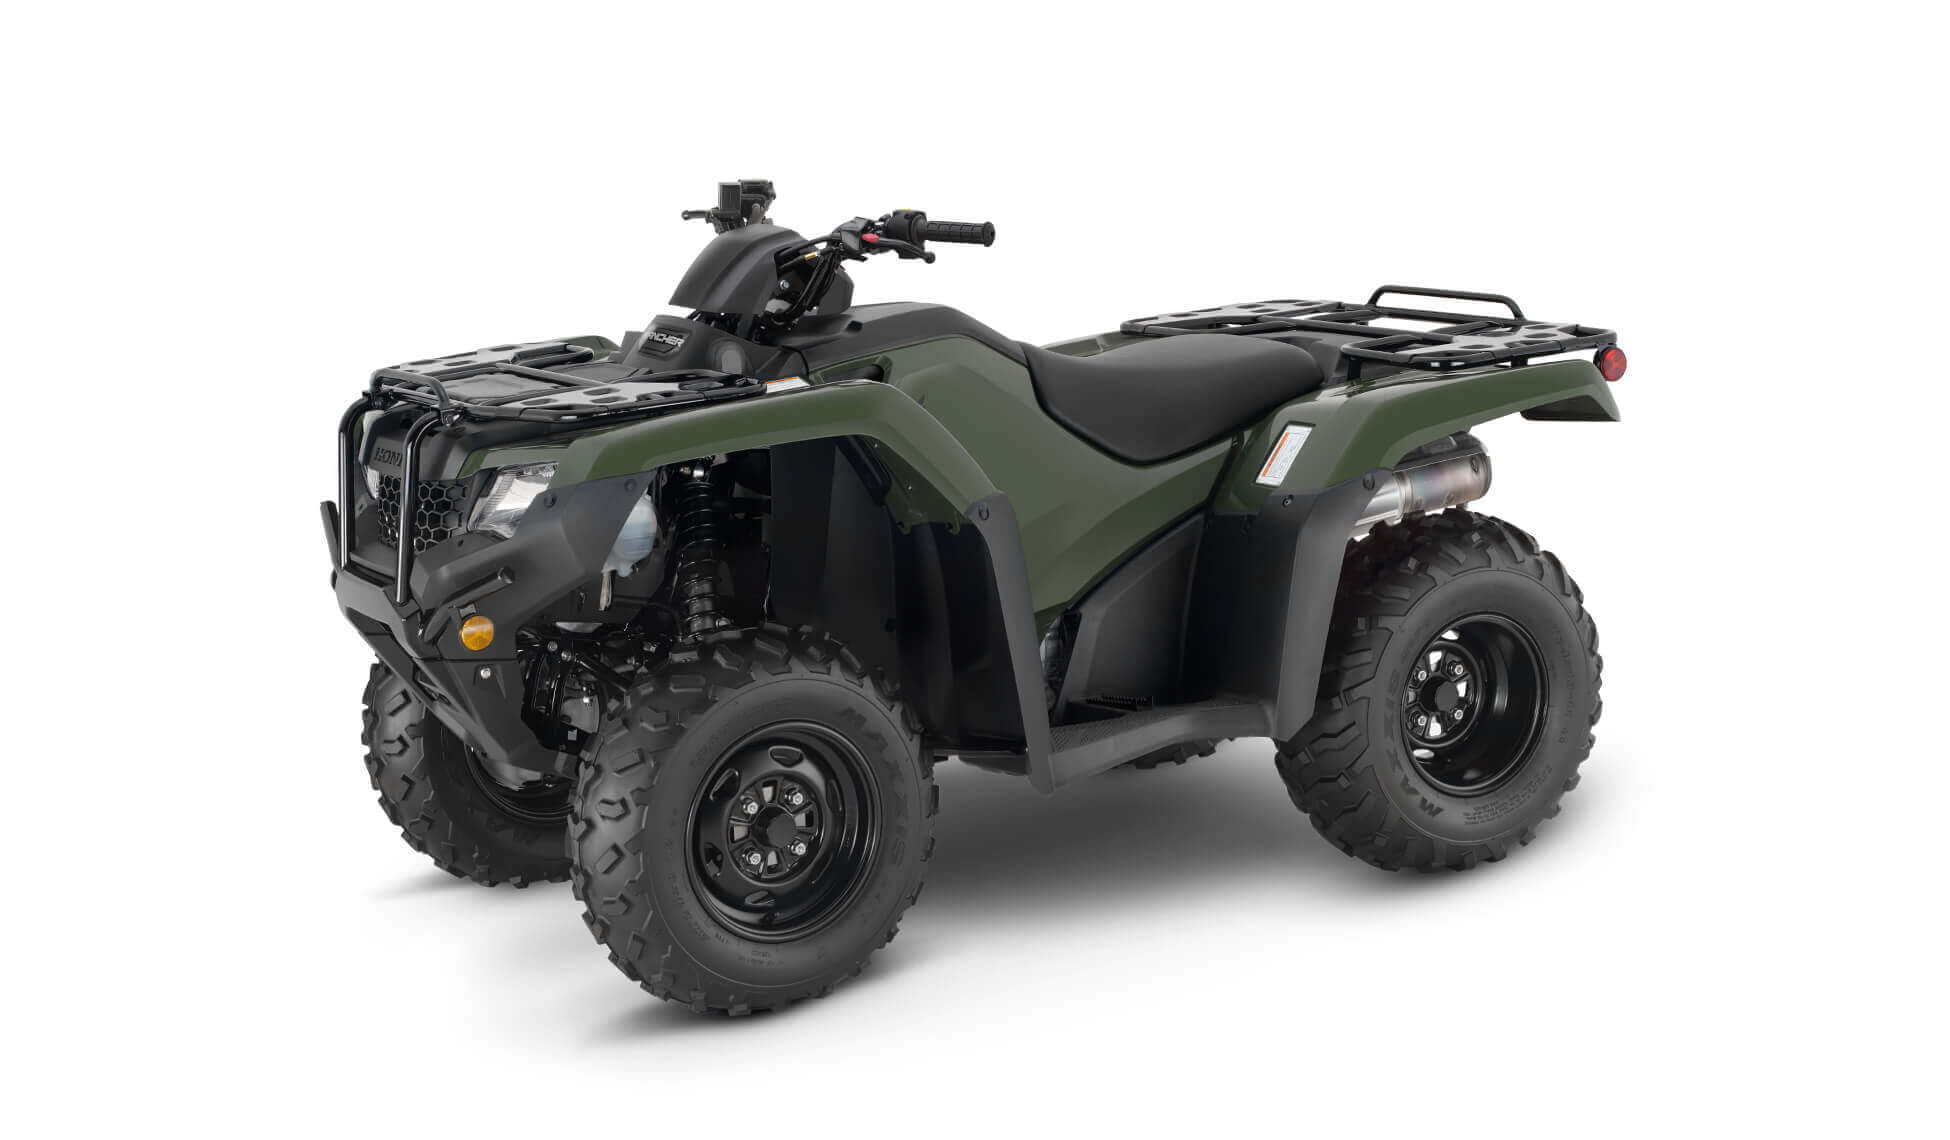 2021 Honda Rancher 420 4x4 ATV | TRX420FM1 Review & Specs